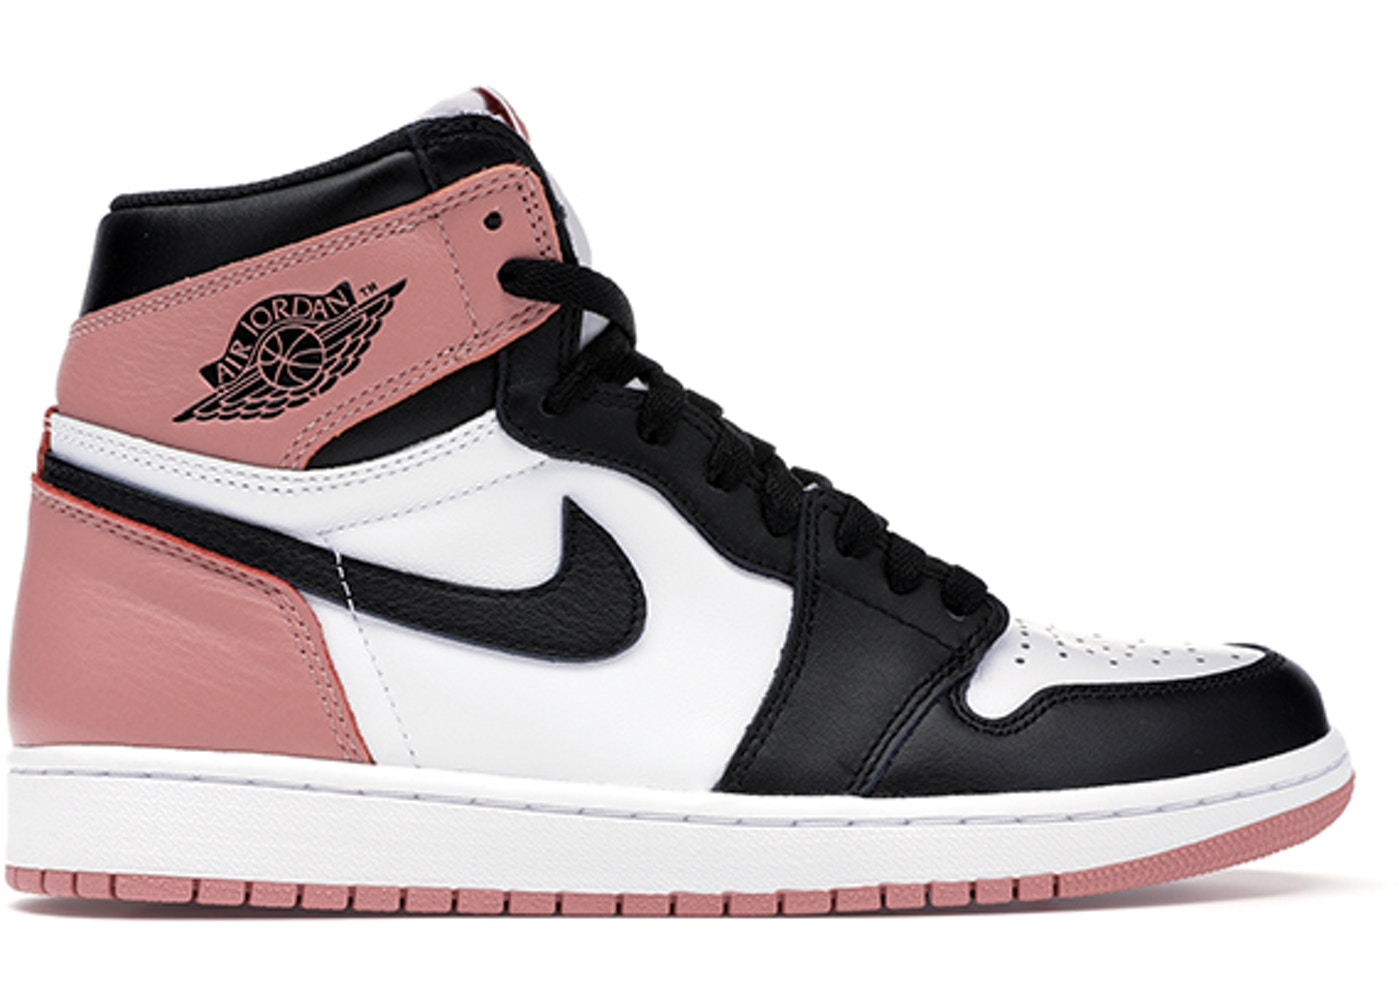 3e2a4980f983cc Air Jordan 1 Shoes - Average Sale Price